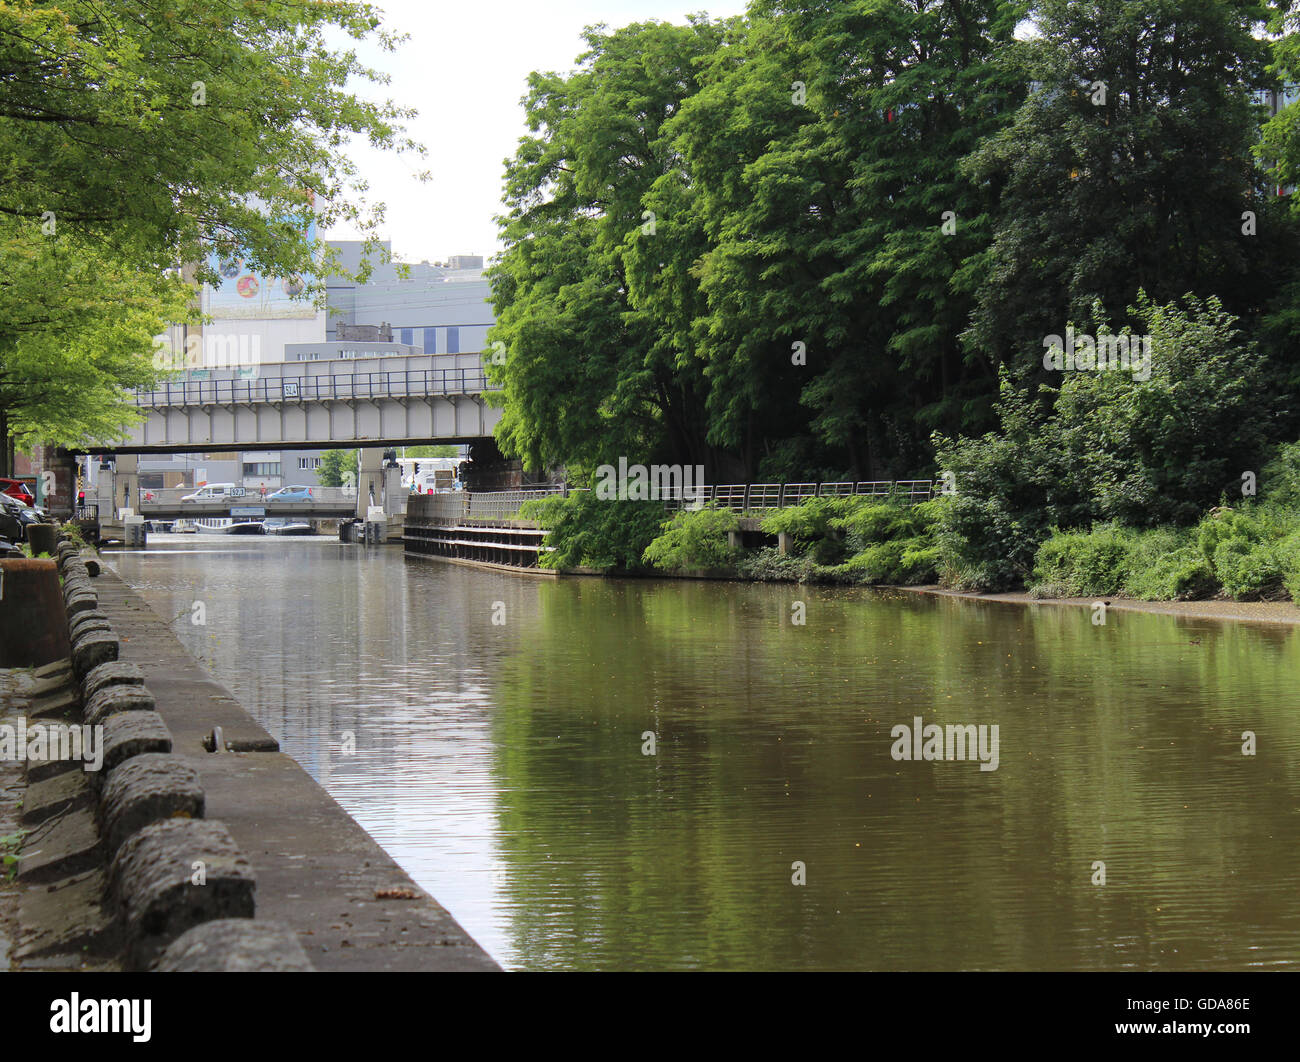 AALST, BELGIUM, JULY 9 2016: View of the river Dender as it runs through Aalst. The Dender is navigable for cargo Stock Photo